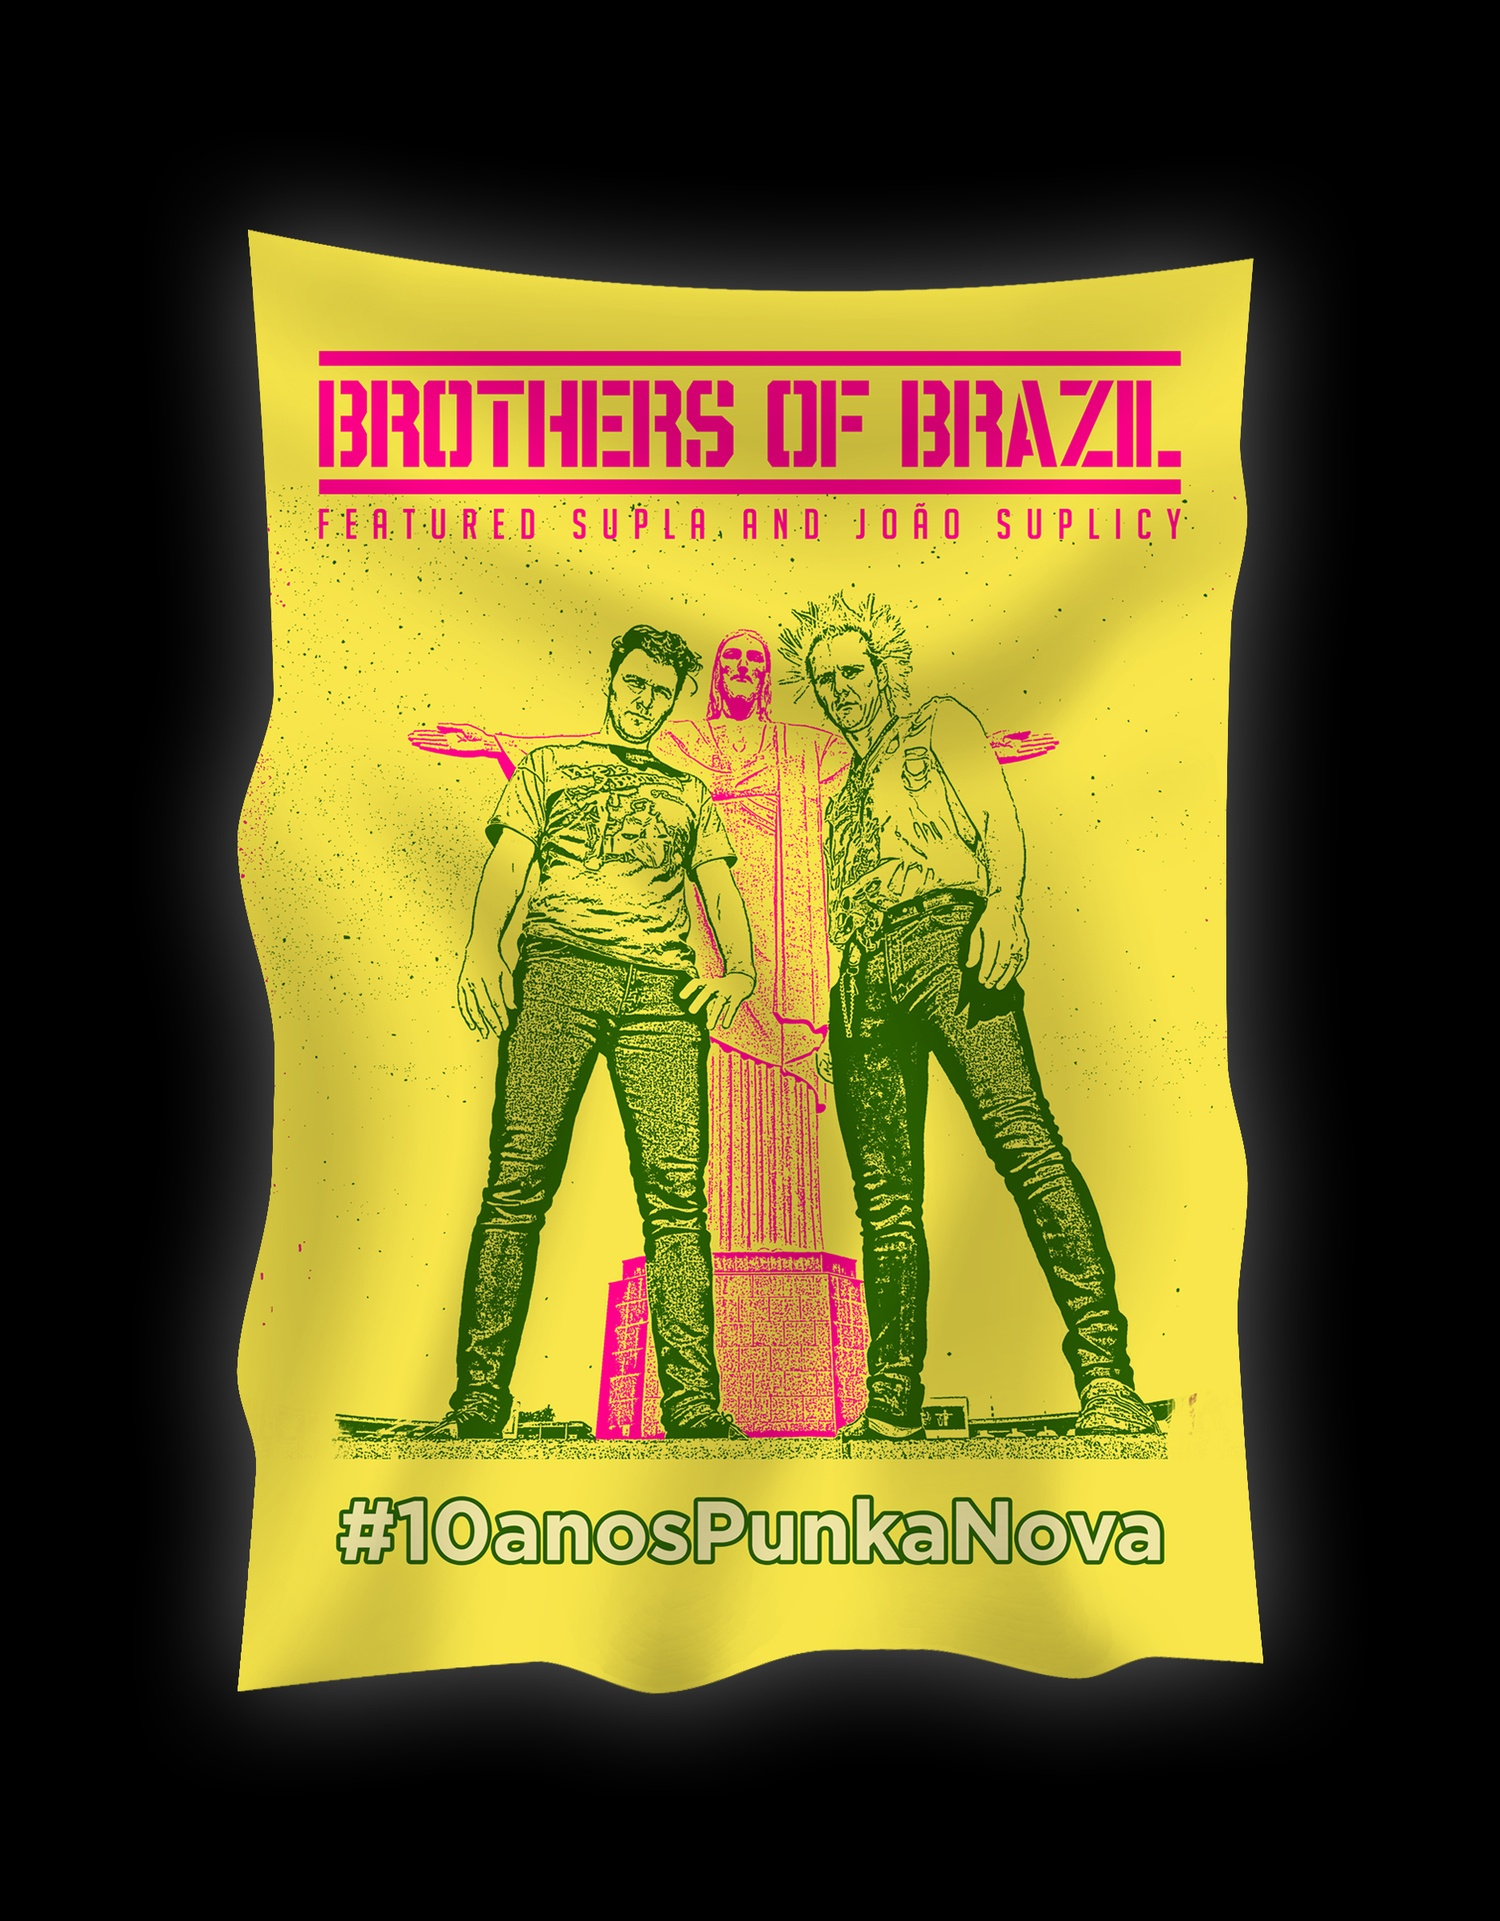 Bandeira Brothers of Brazil